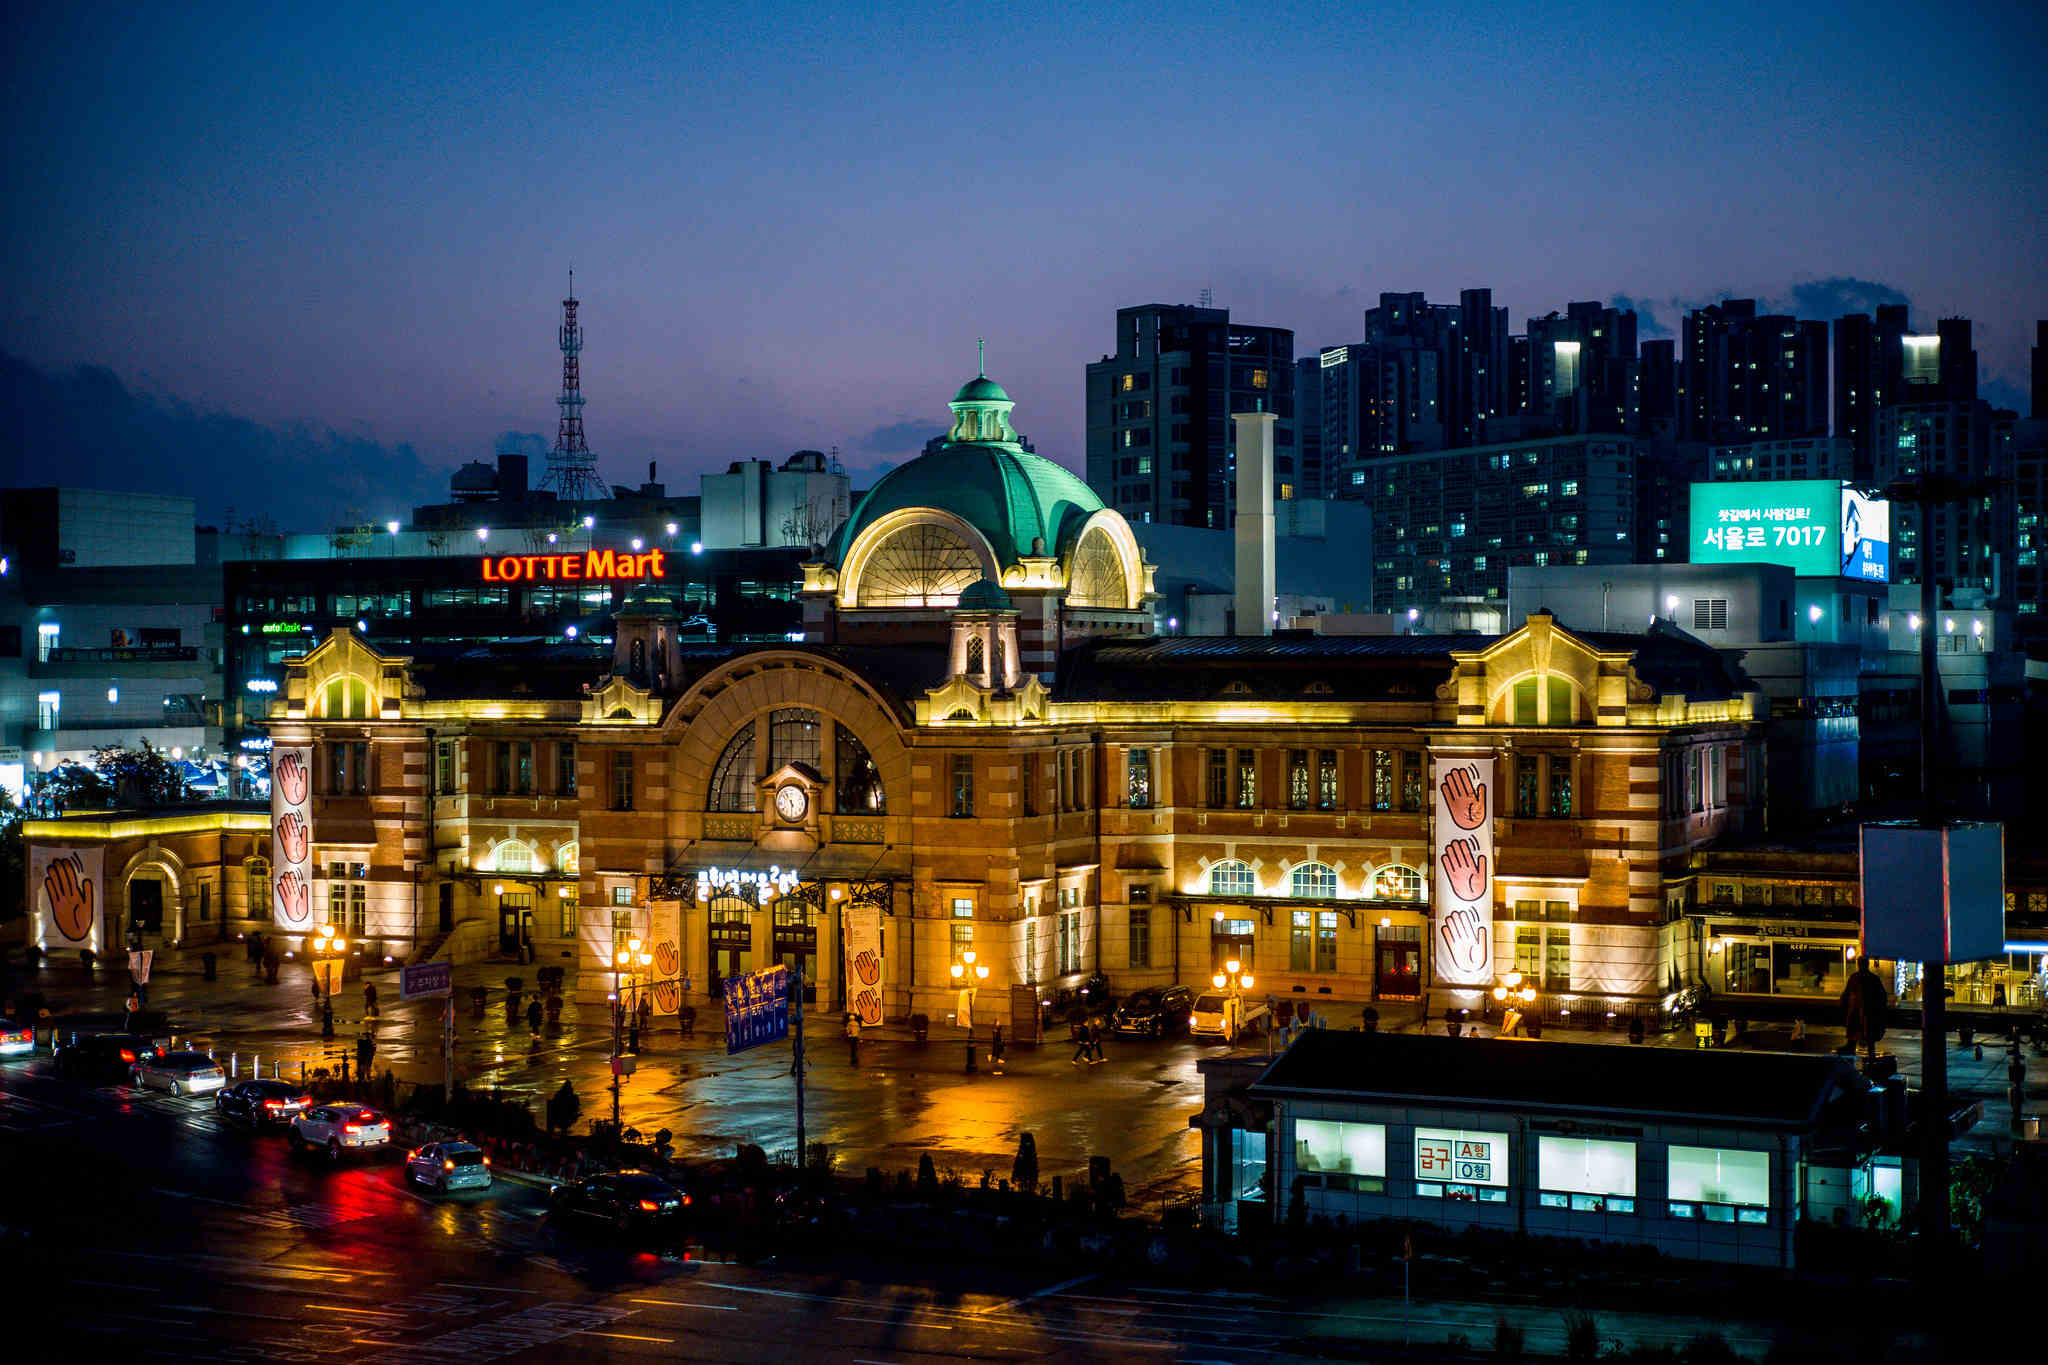 Seoul then and now - The Old Seoul Station/The Culture station, Seoul 284